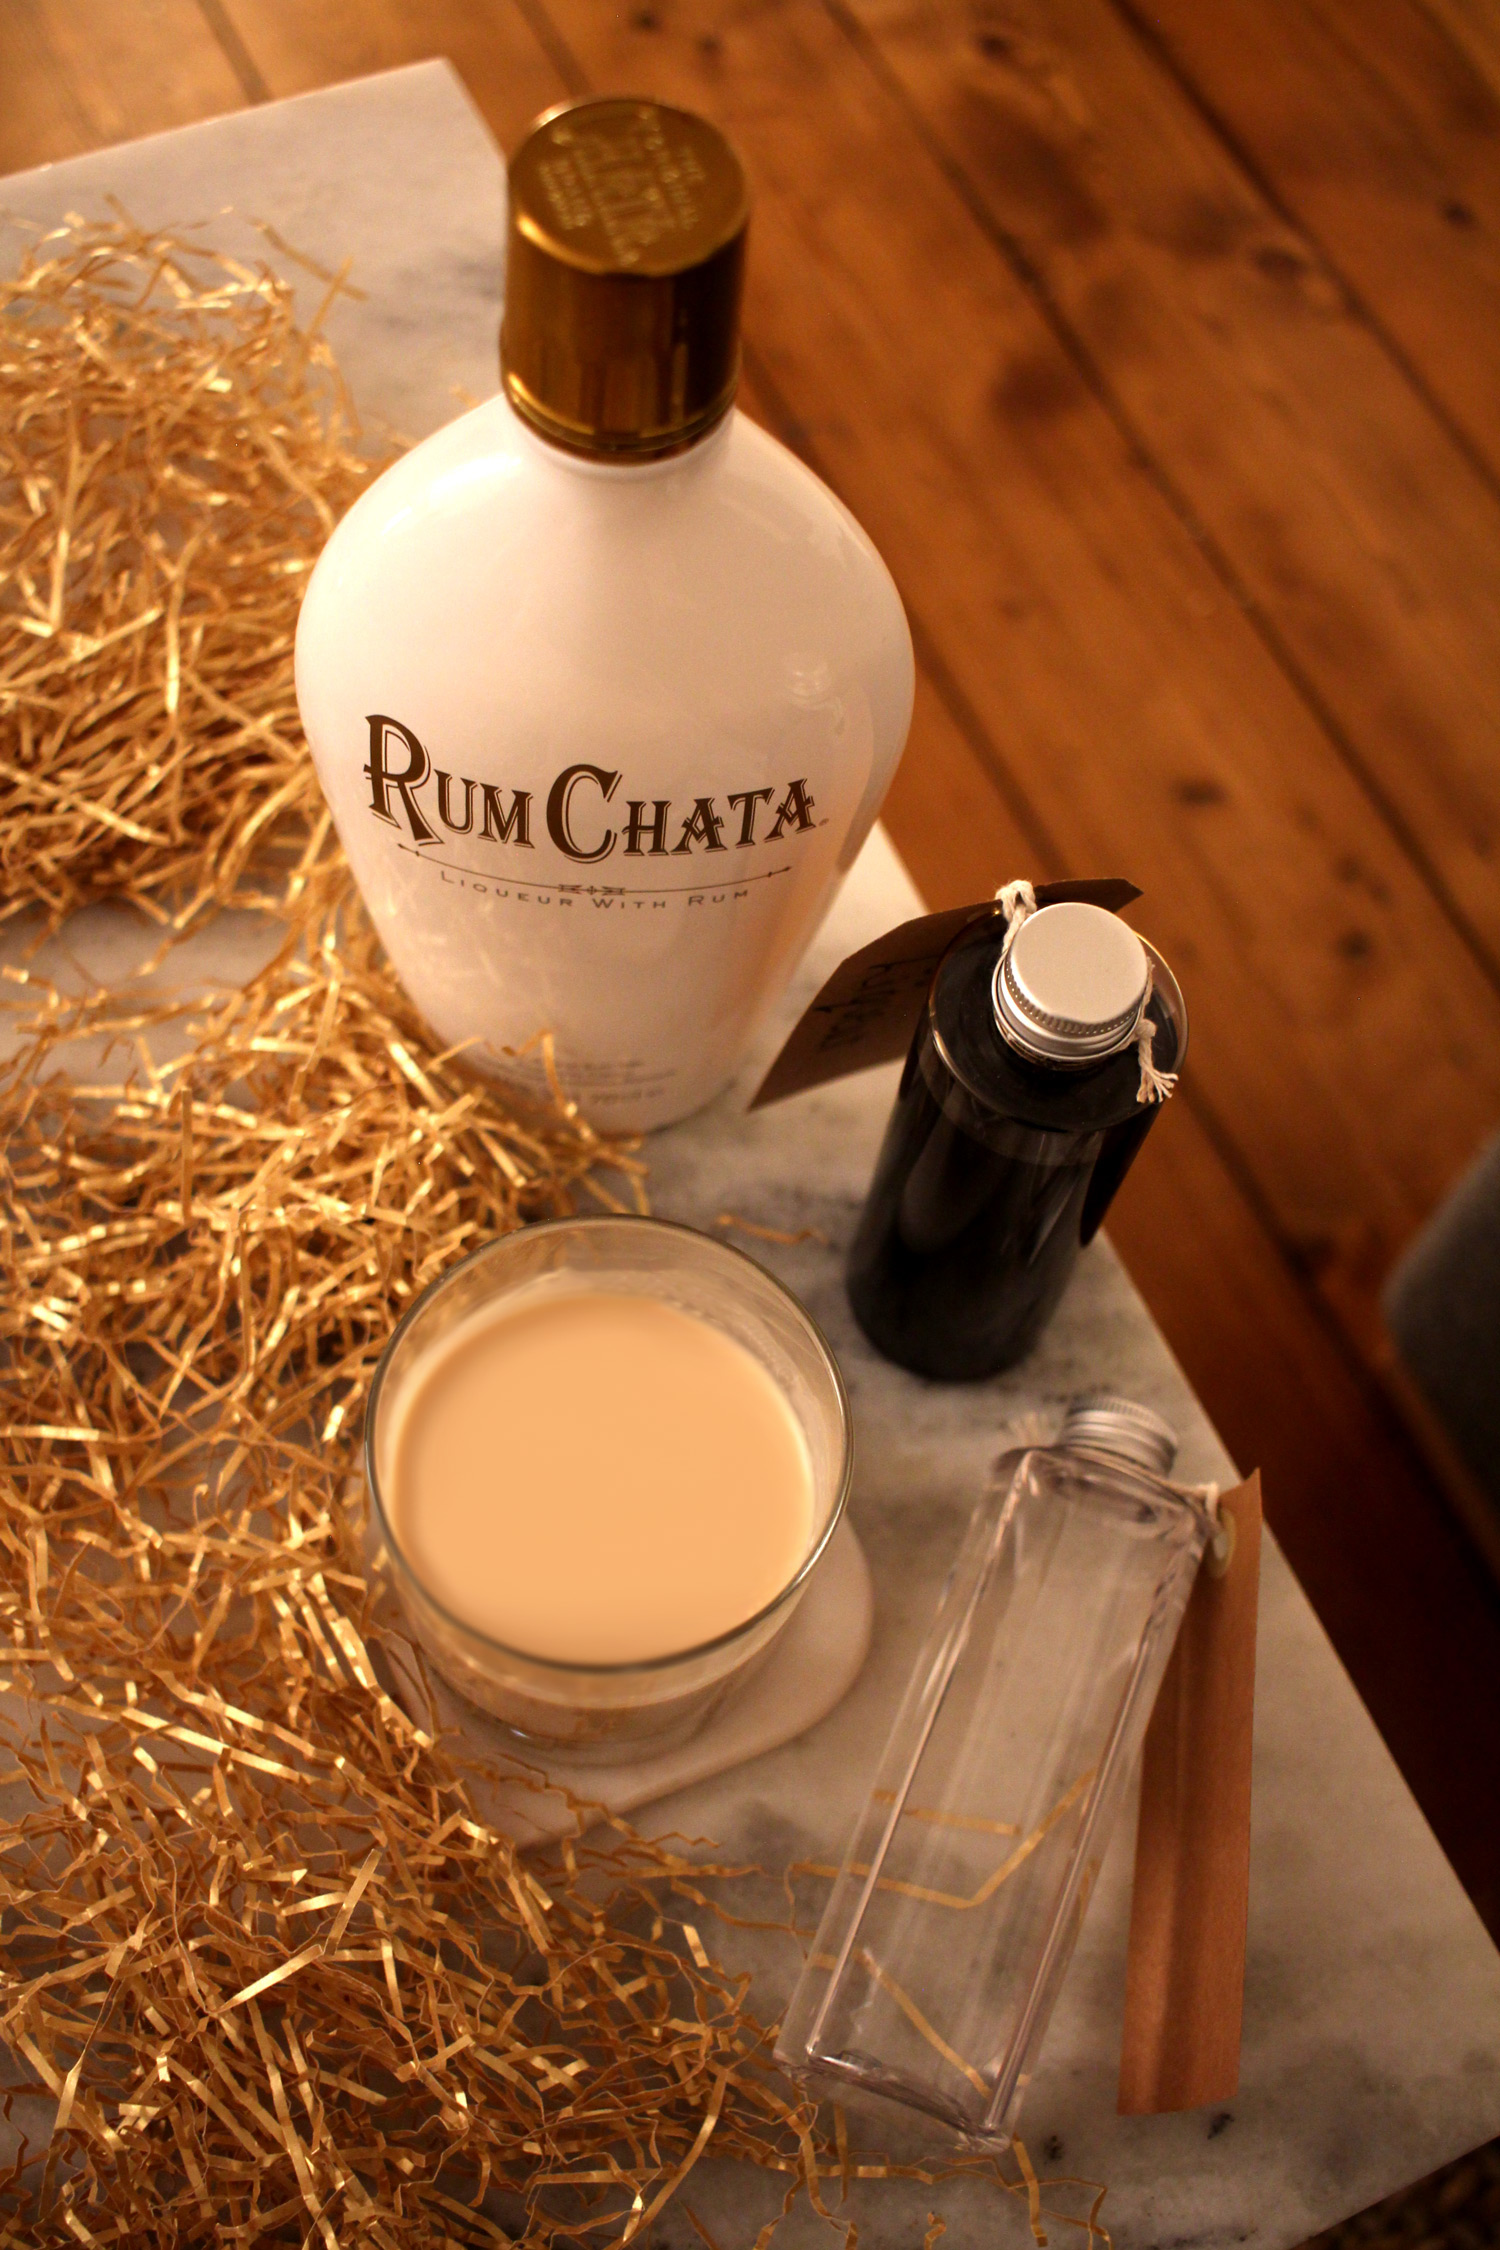 rum-chata-post-girls-night-in-lifestyle-cocktails-13